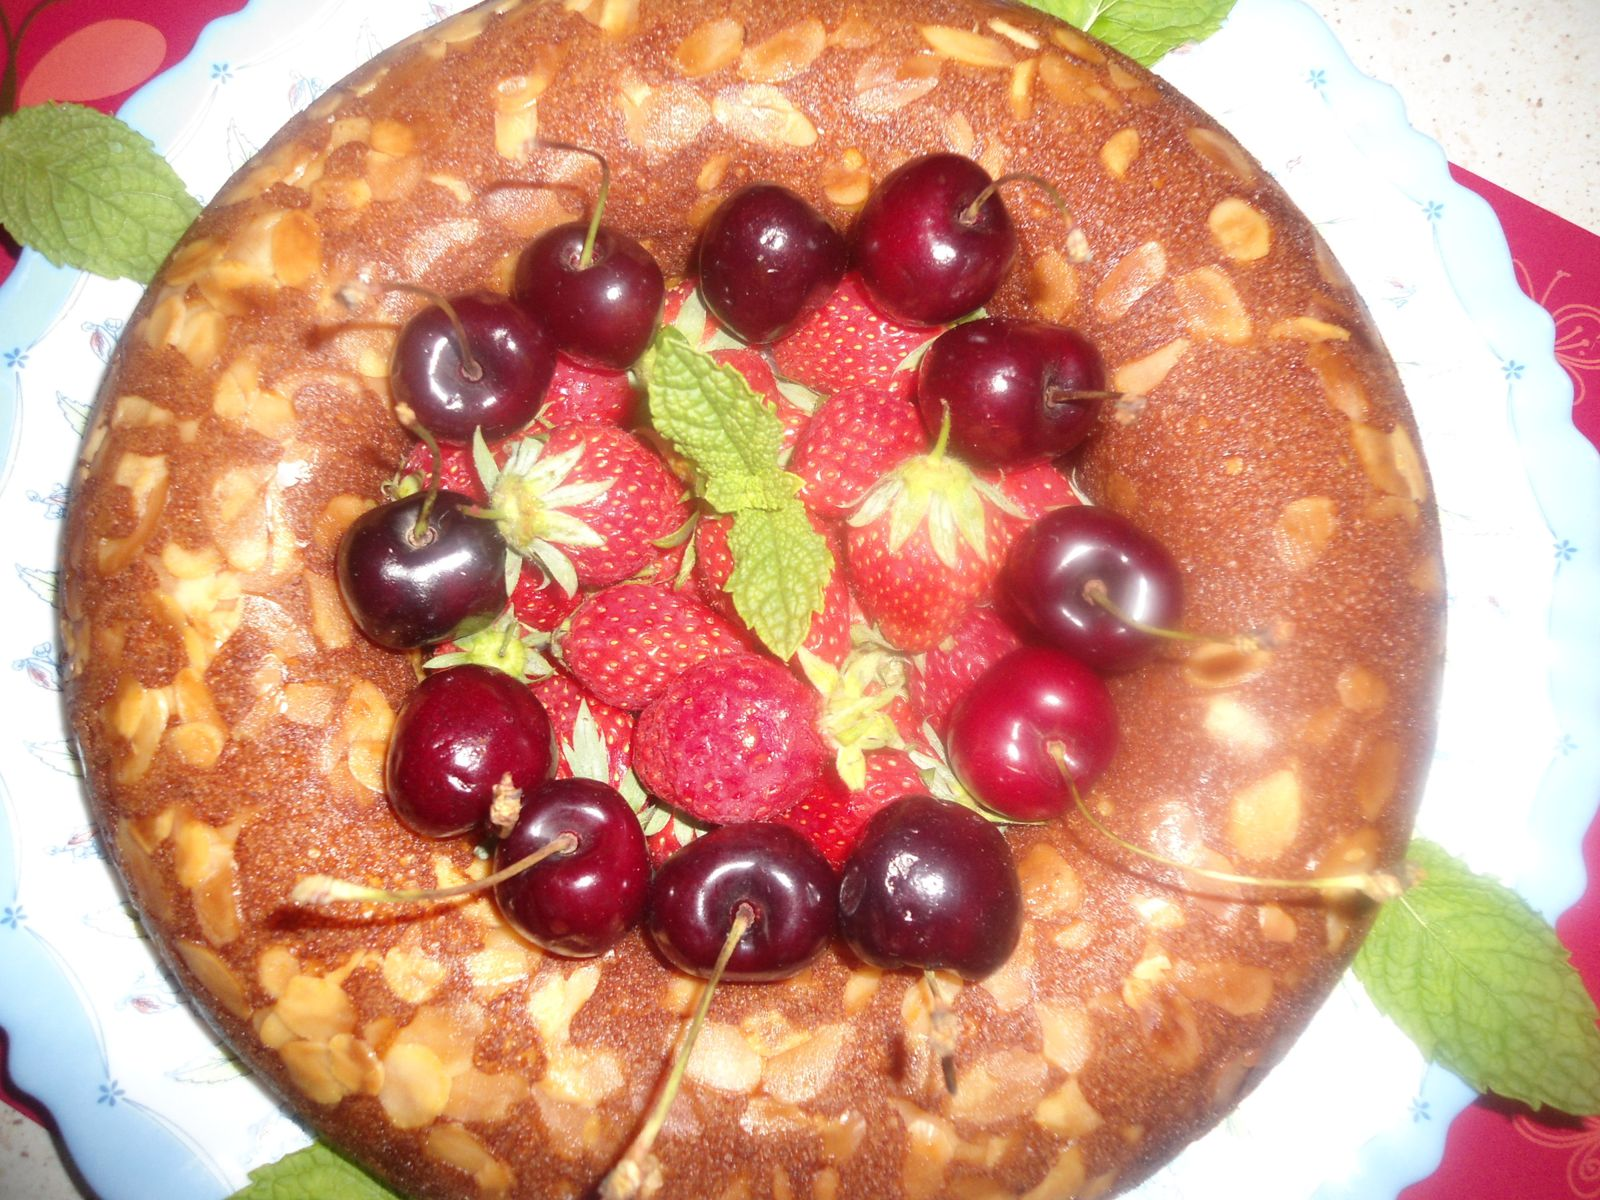 Gateaux au fruit rouge